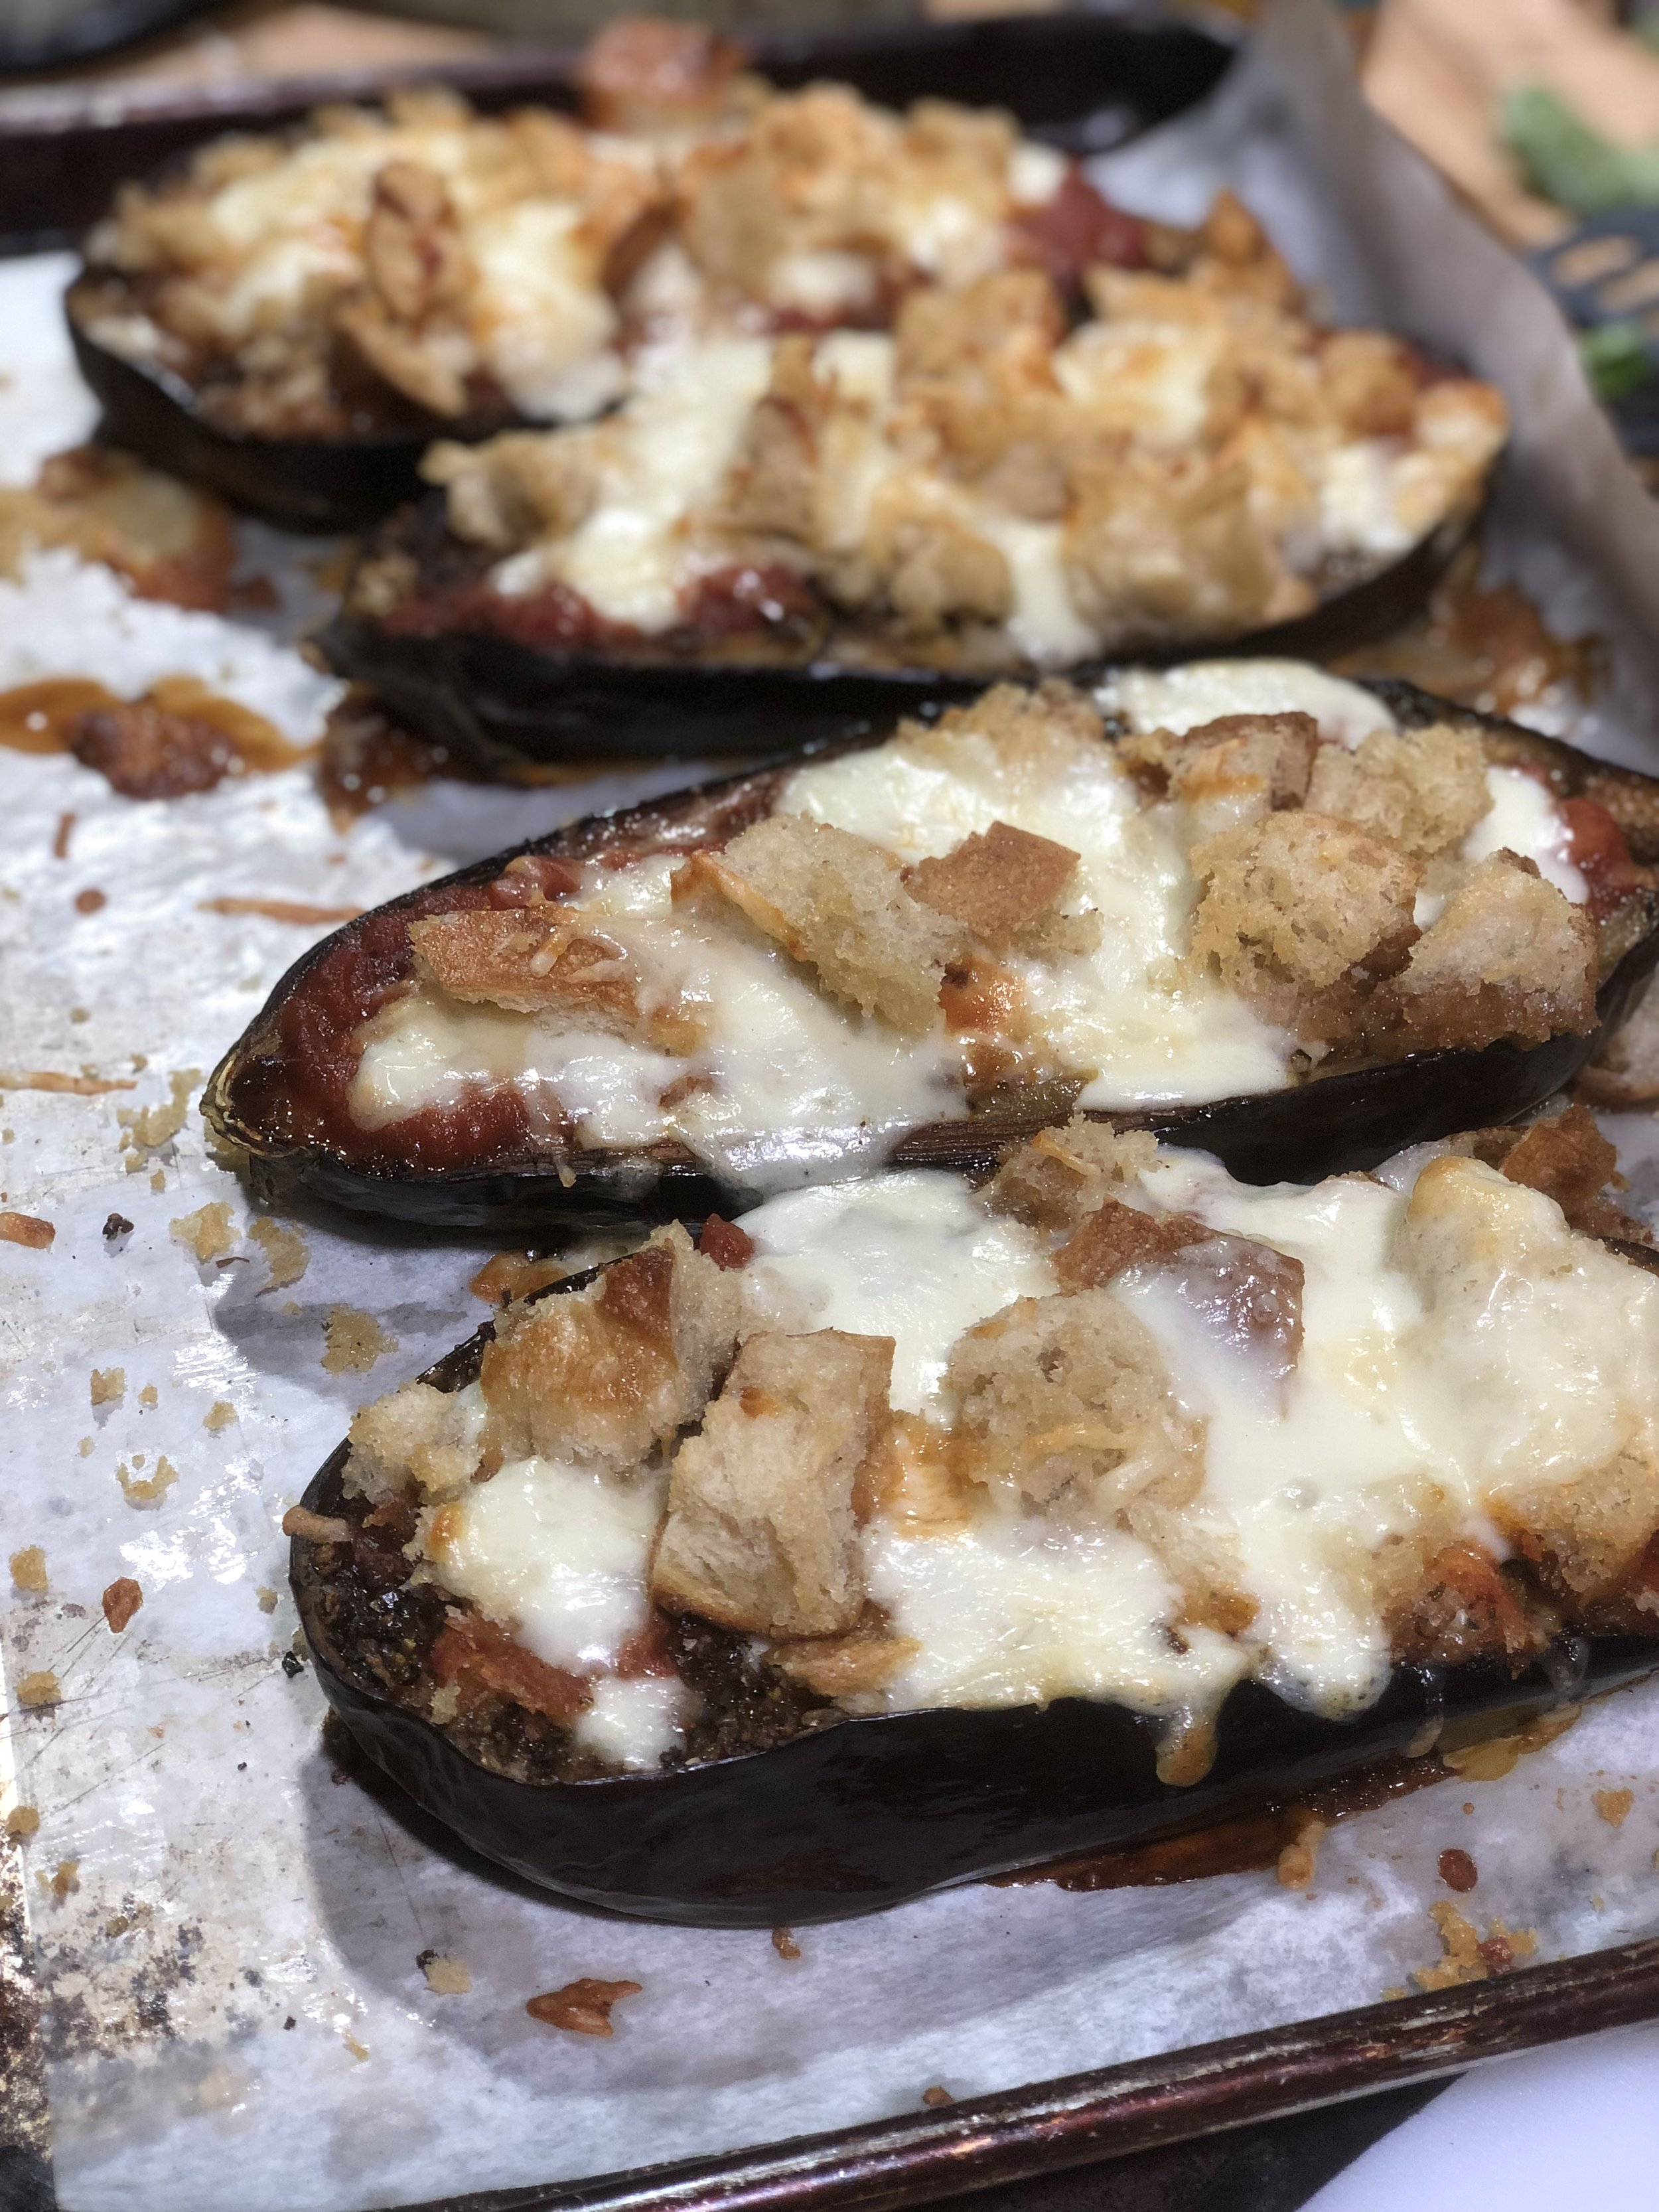 Crunchy croutons and melted cheese on our unfussy eggplant Parmesan